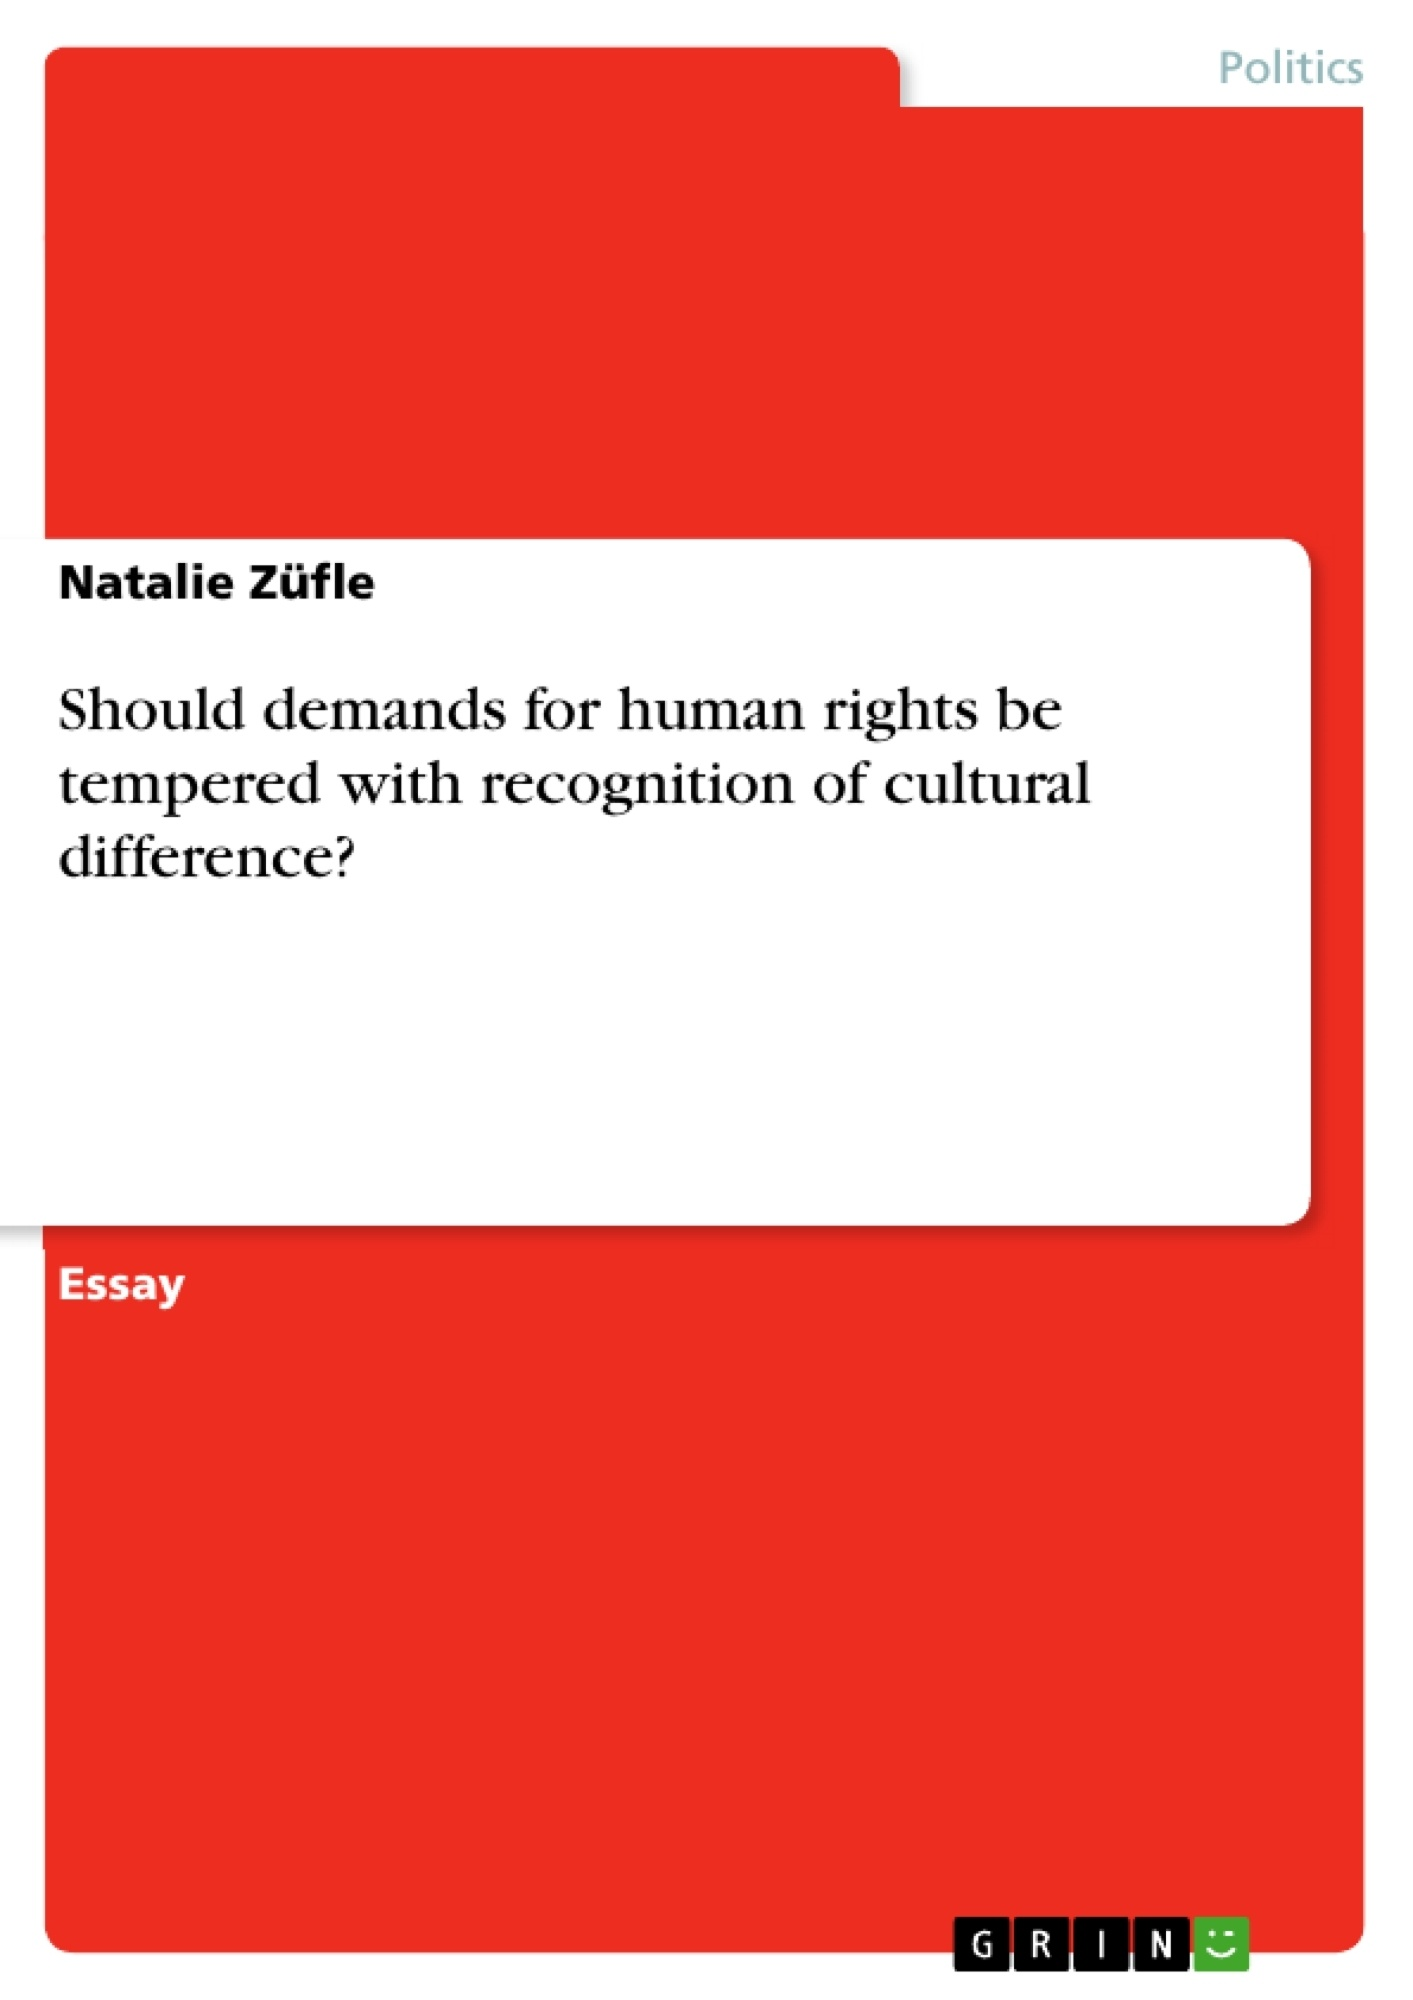 Title: Should demands for human rights be tempered with recognition of cultural difference?